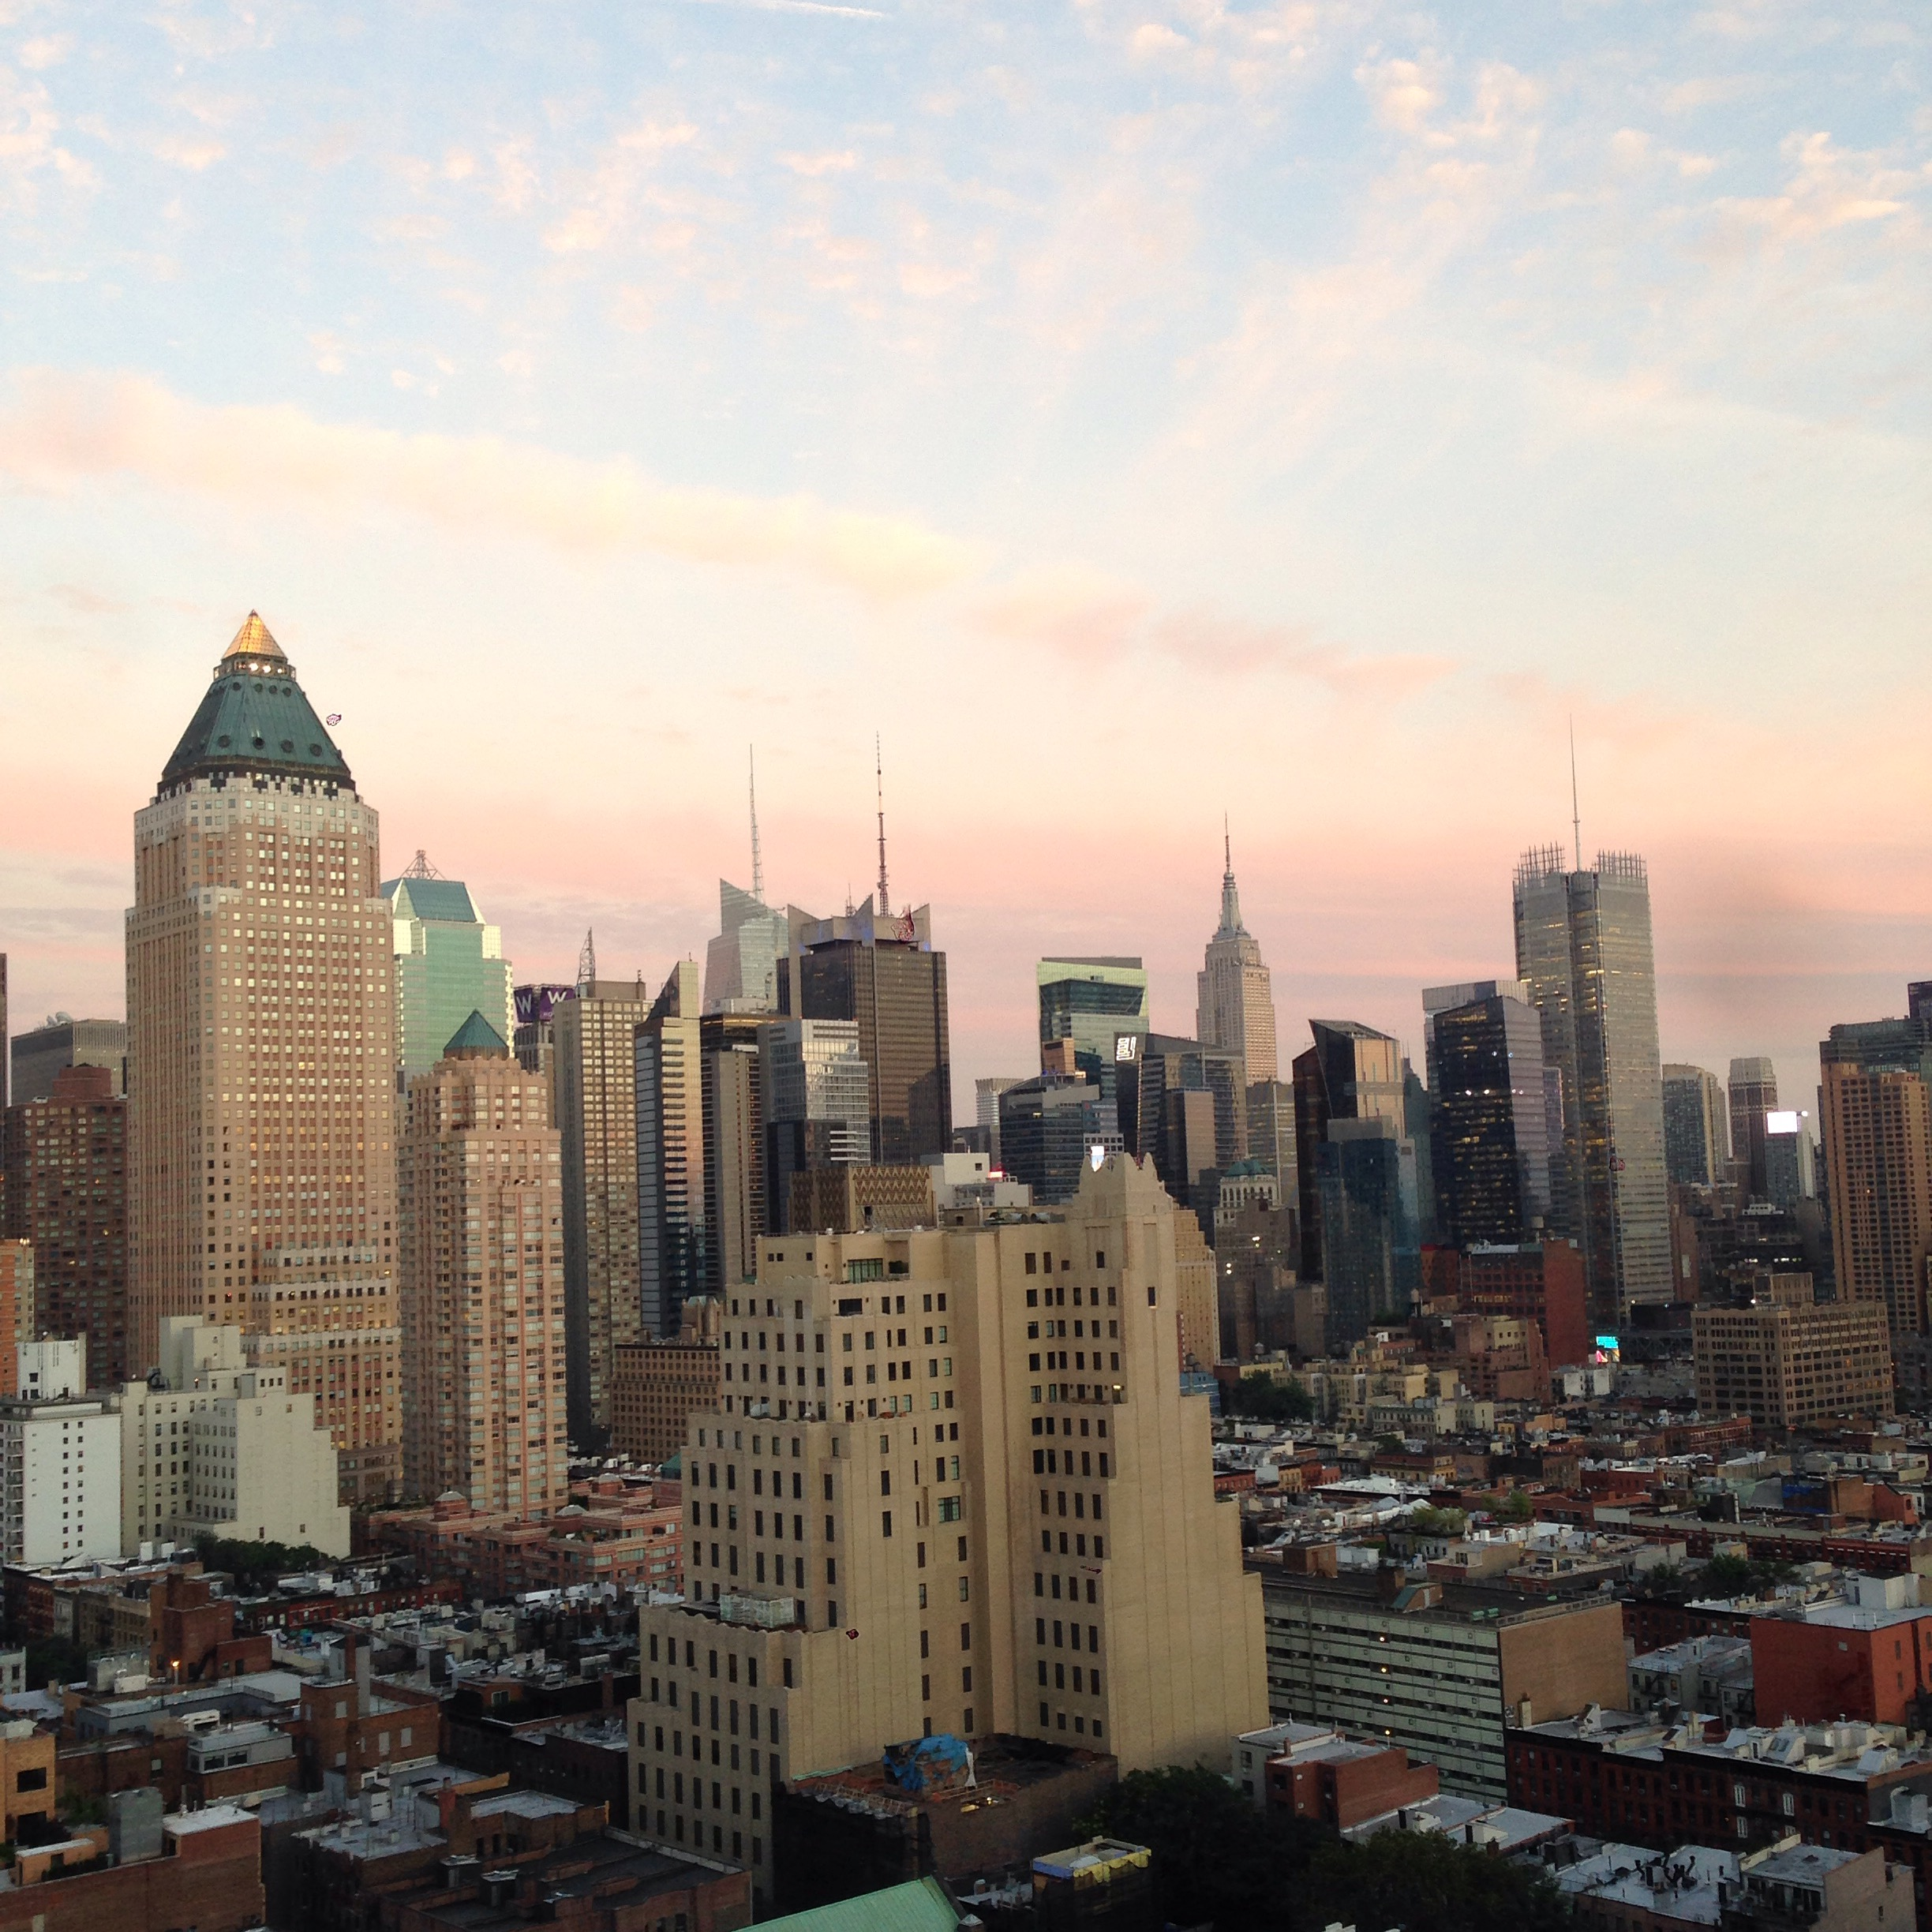 Rooftop view over Midtown Manhattan